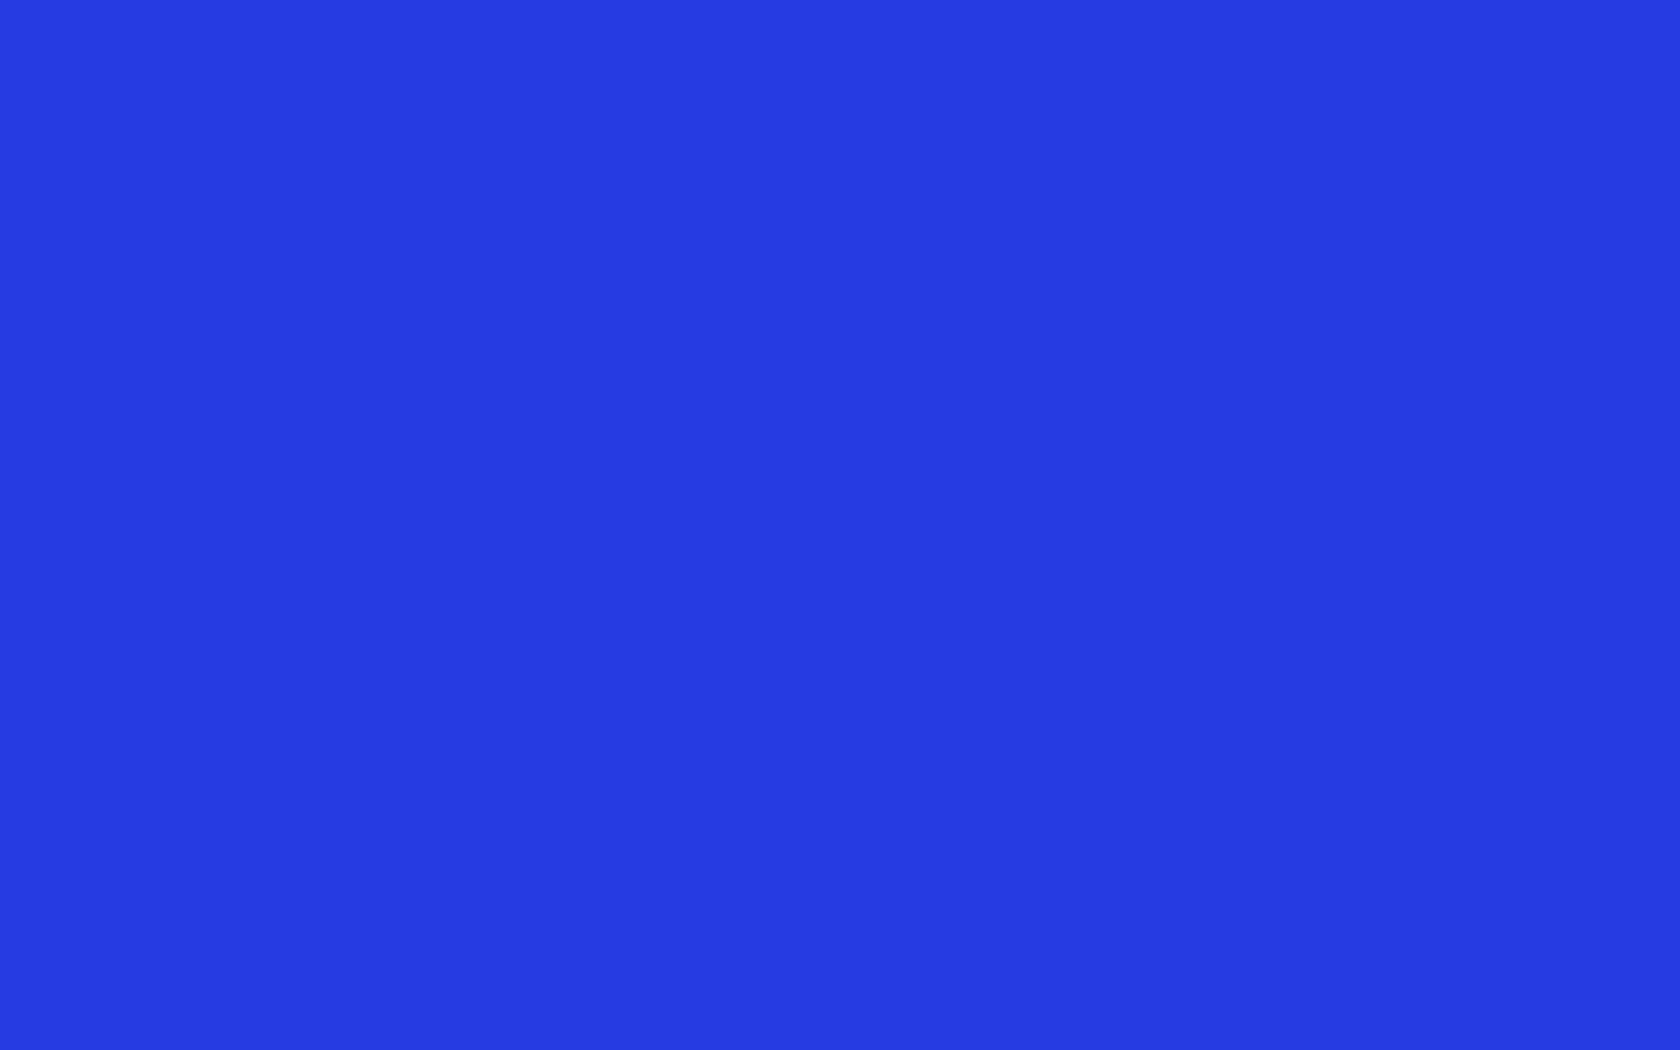 1680x1050 Palatinate Blue Solid Color Background